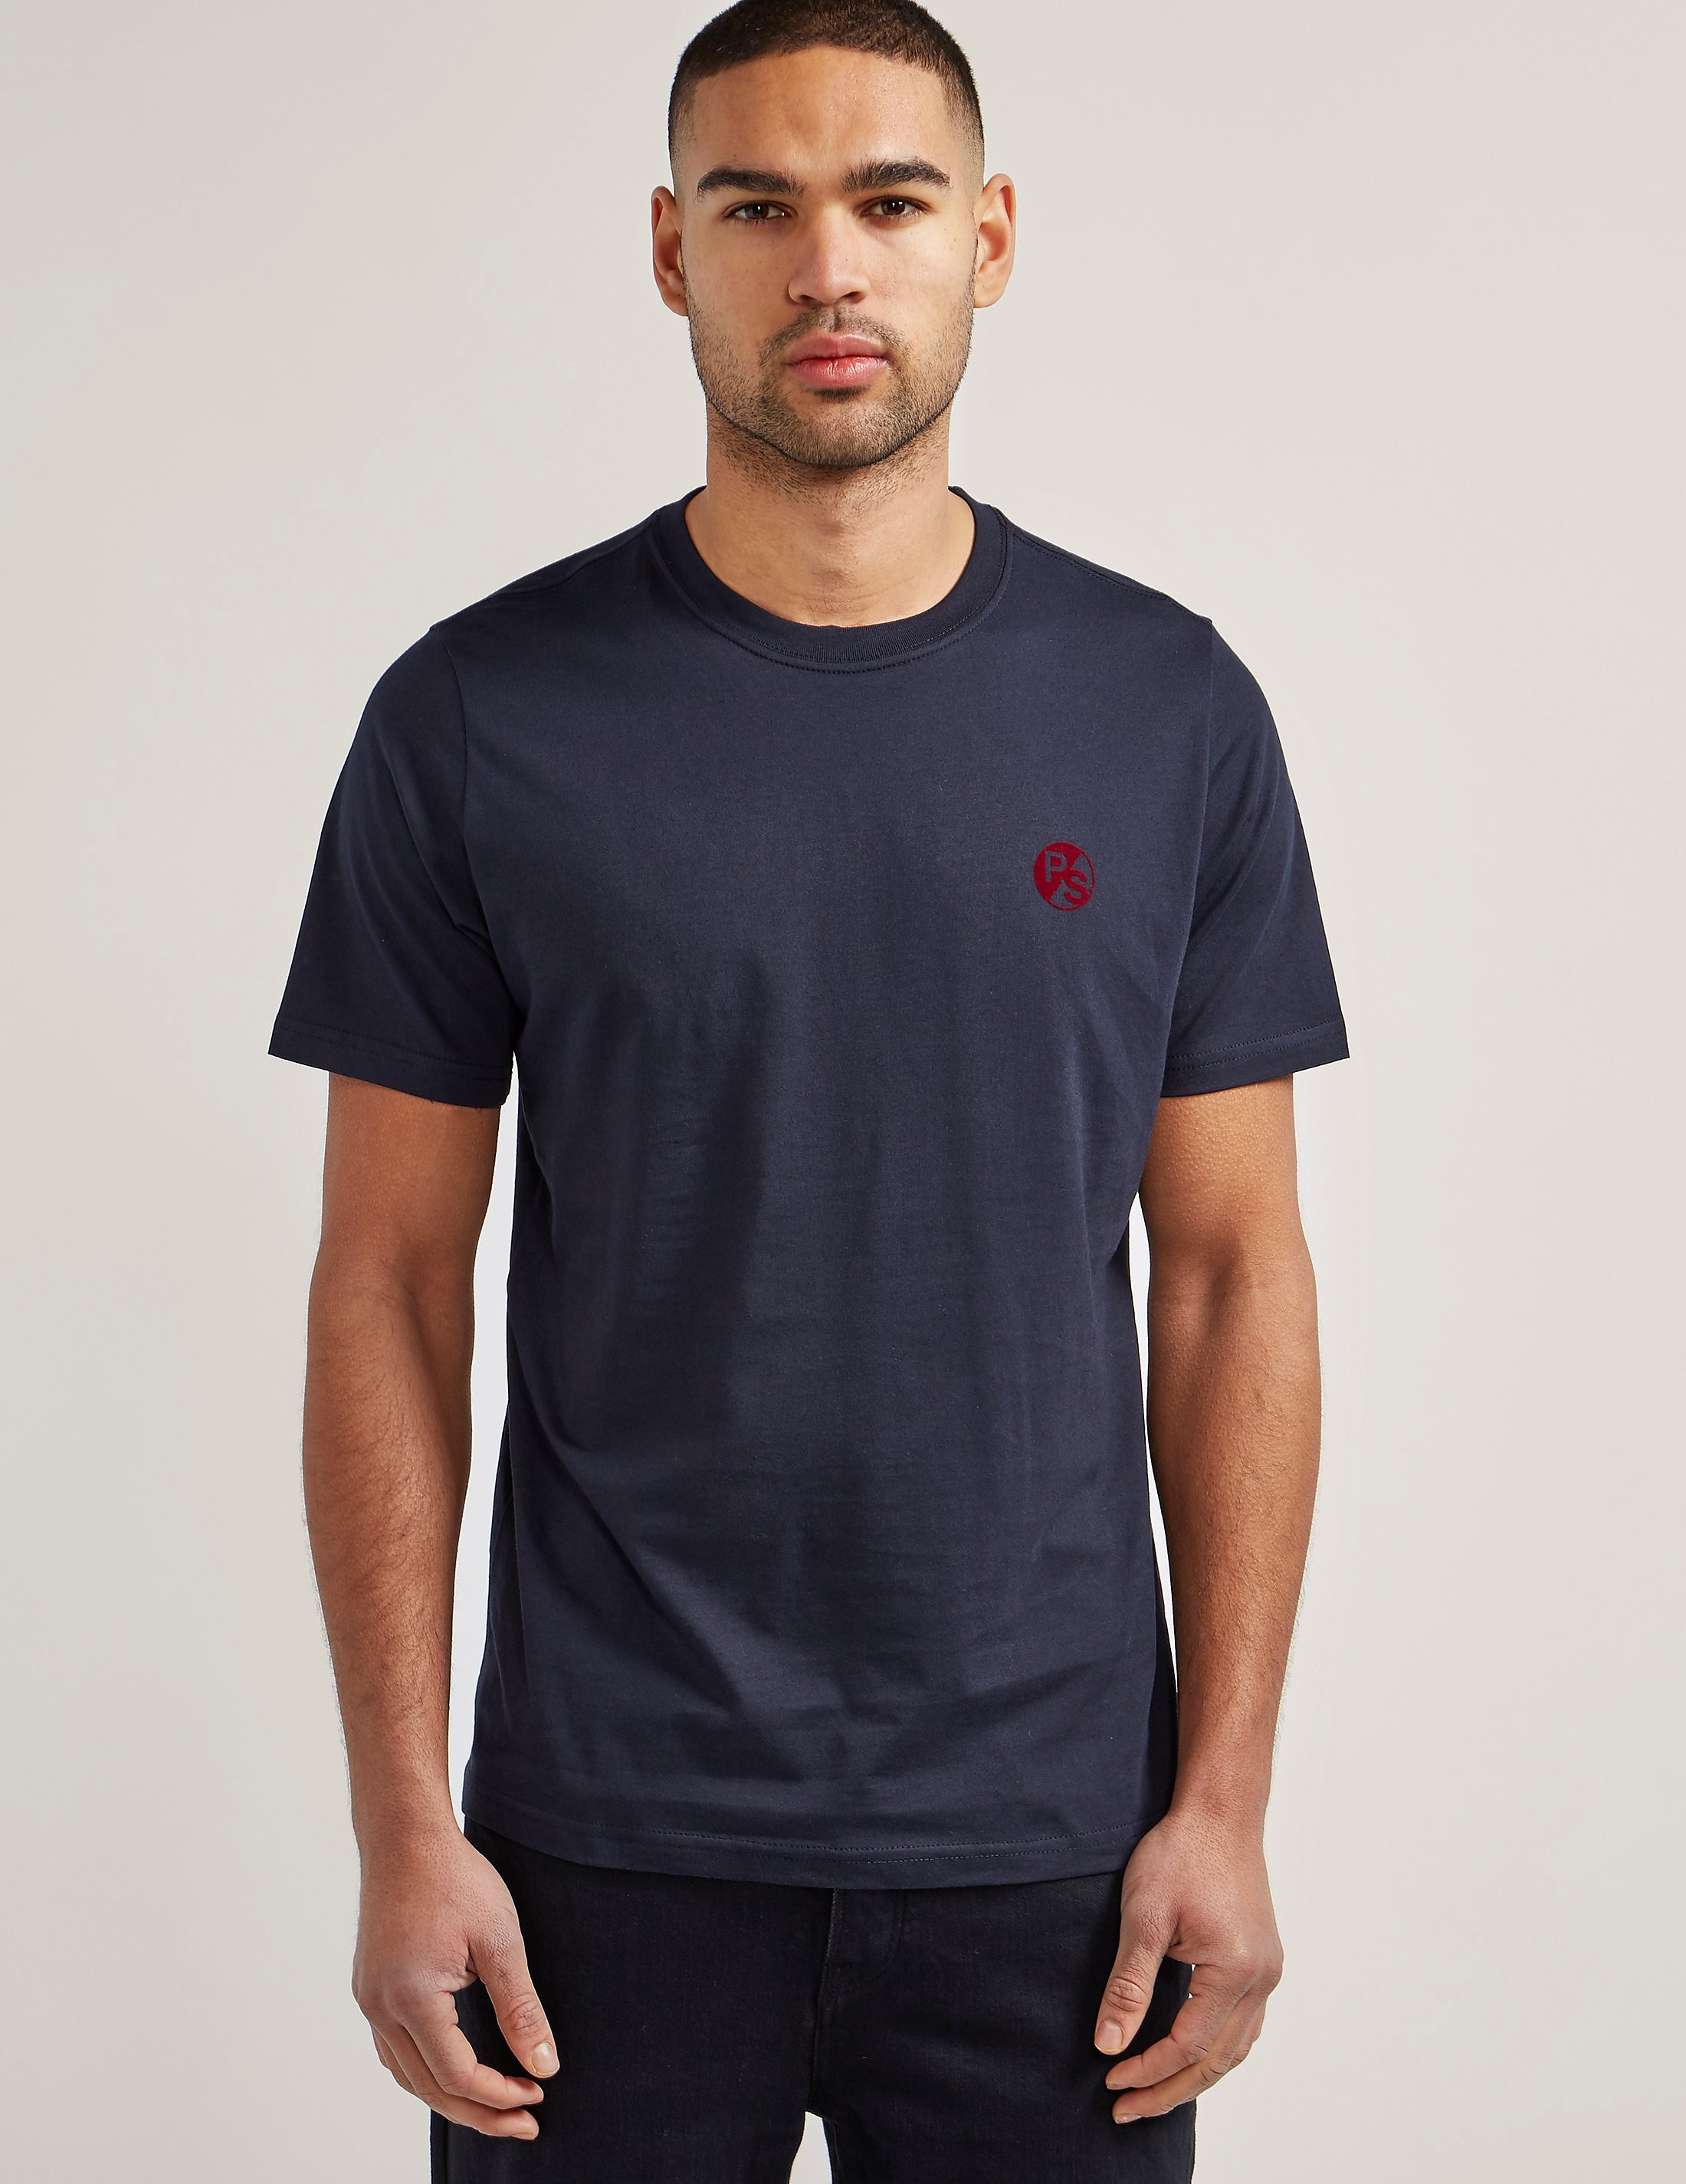 Paul Smith Logo T-Shirt